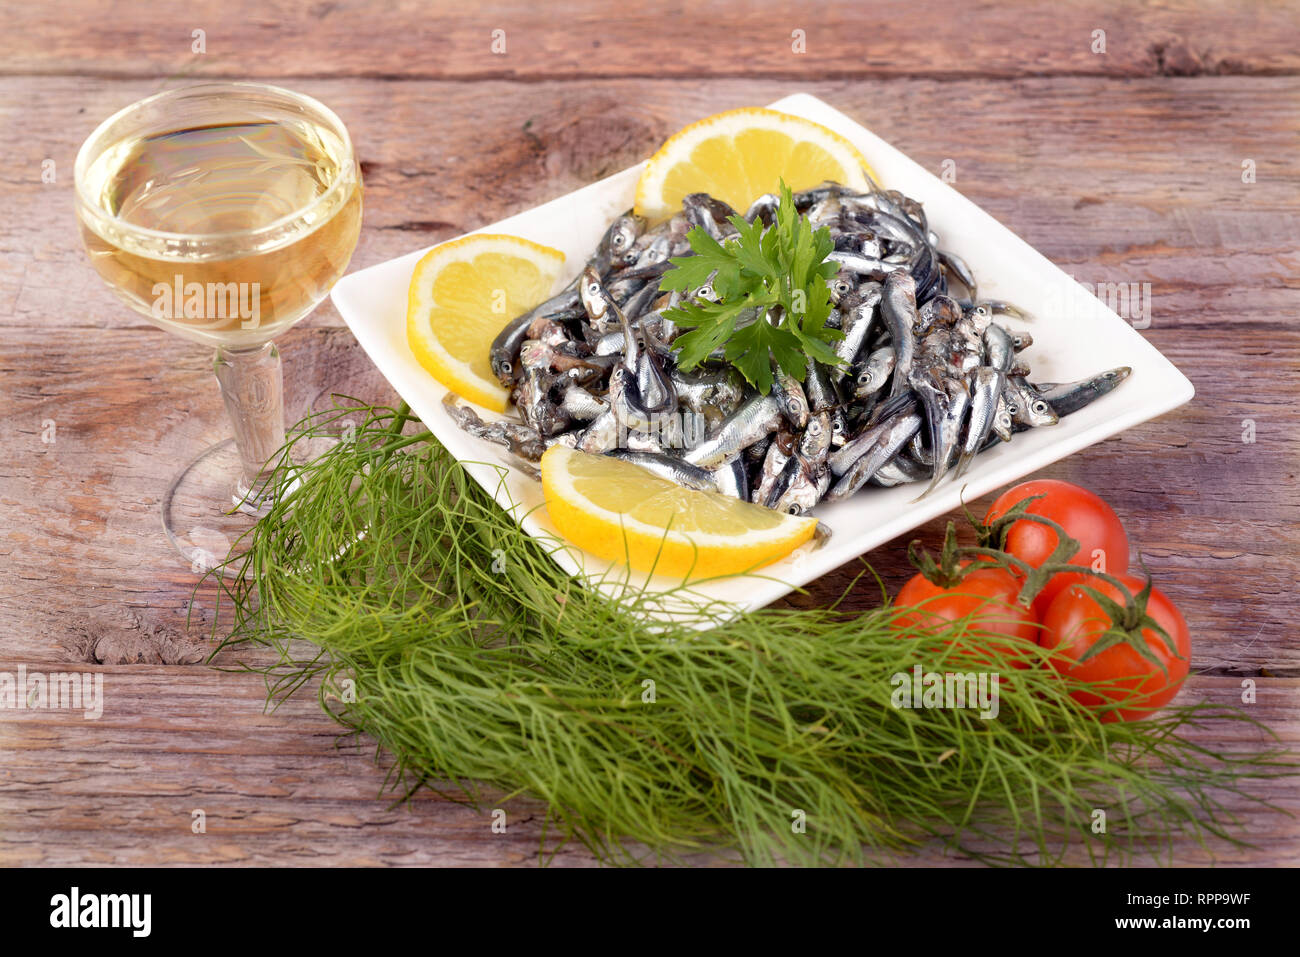 white plate with lemon and wine anchovies on wooden table - Stock Image